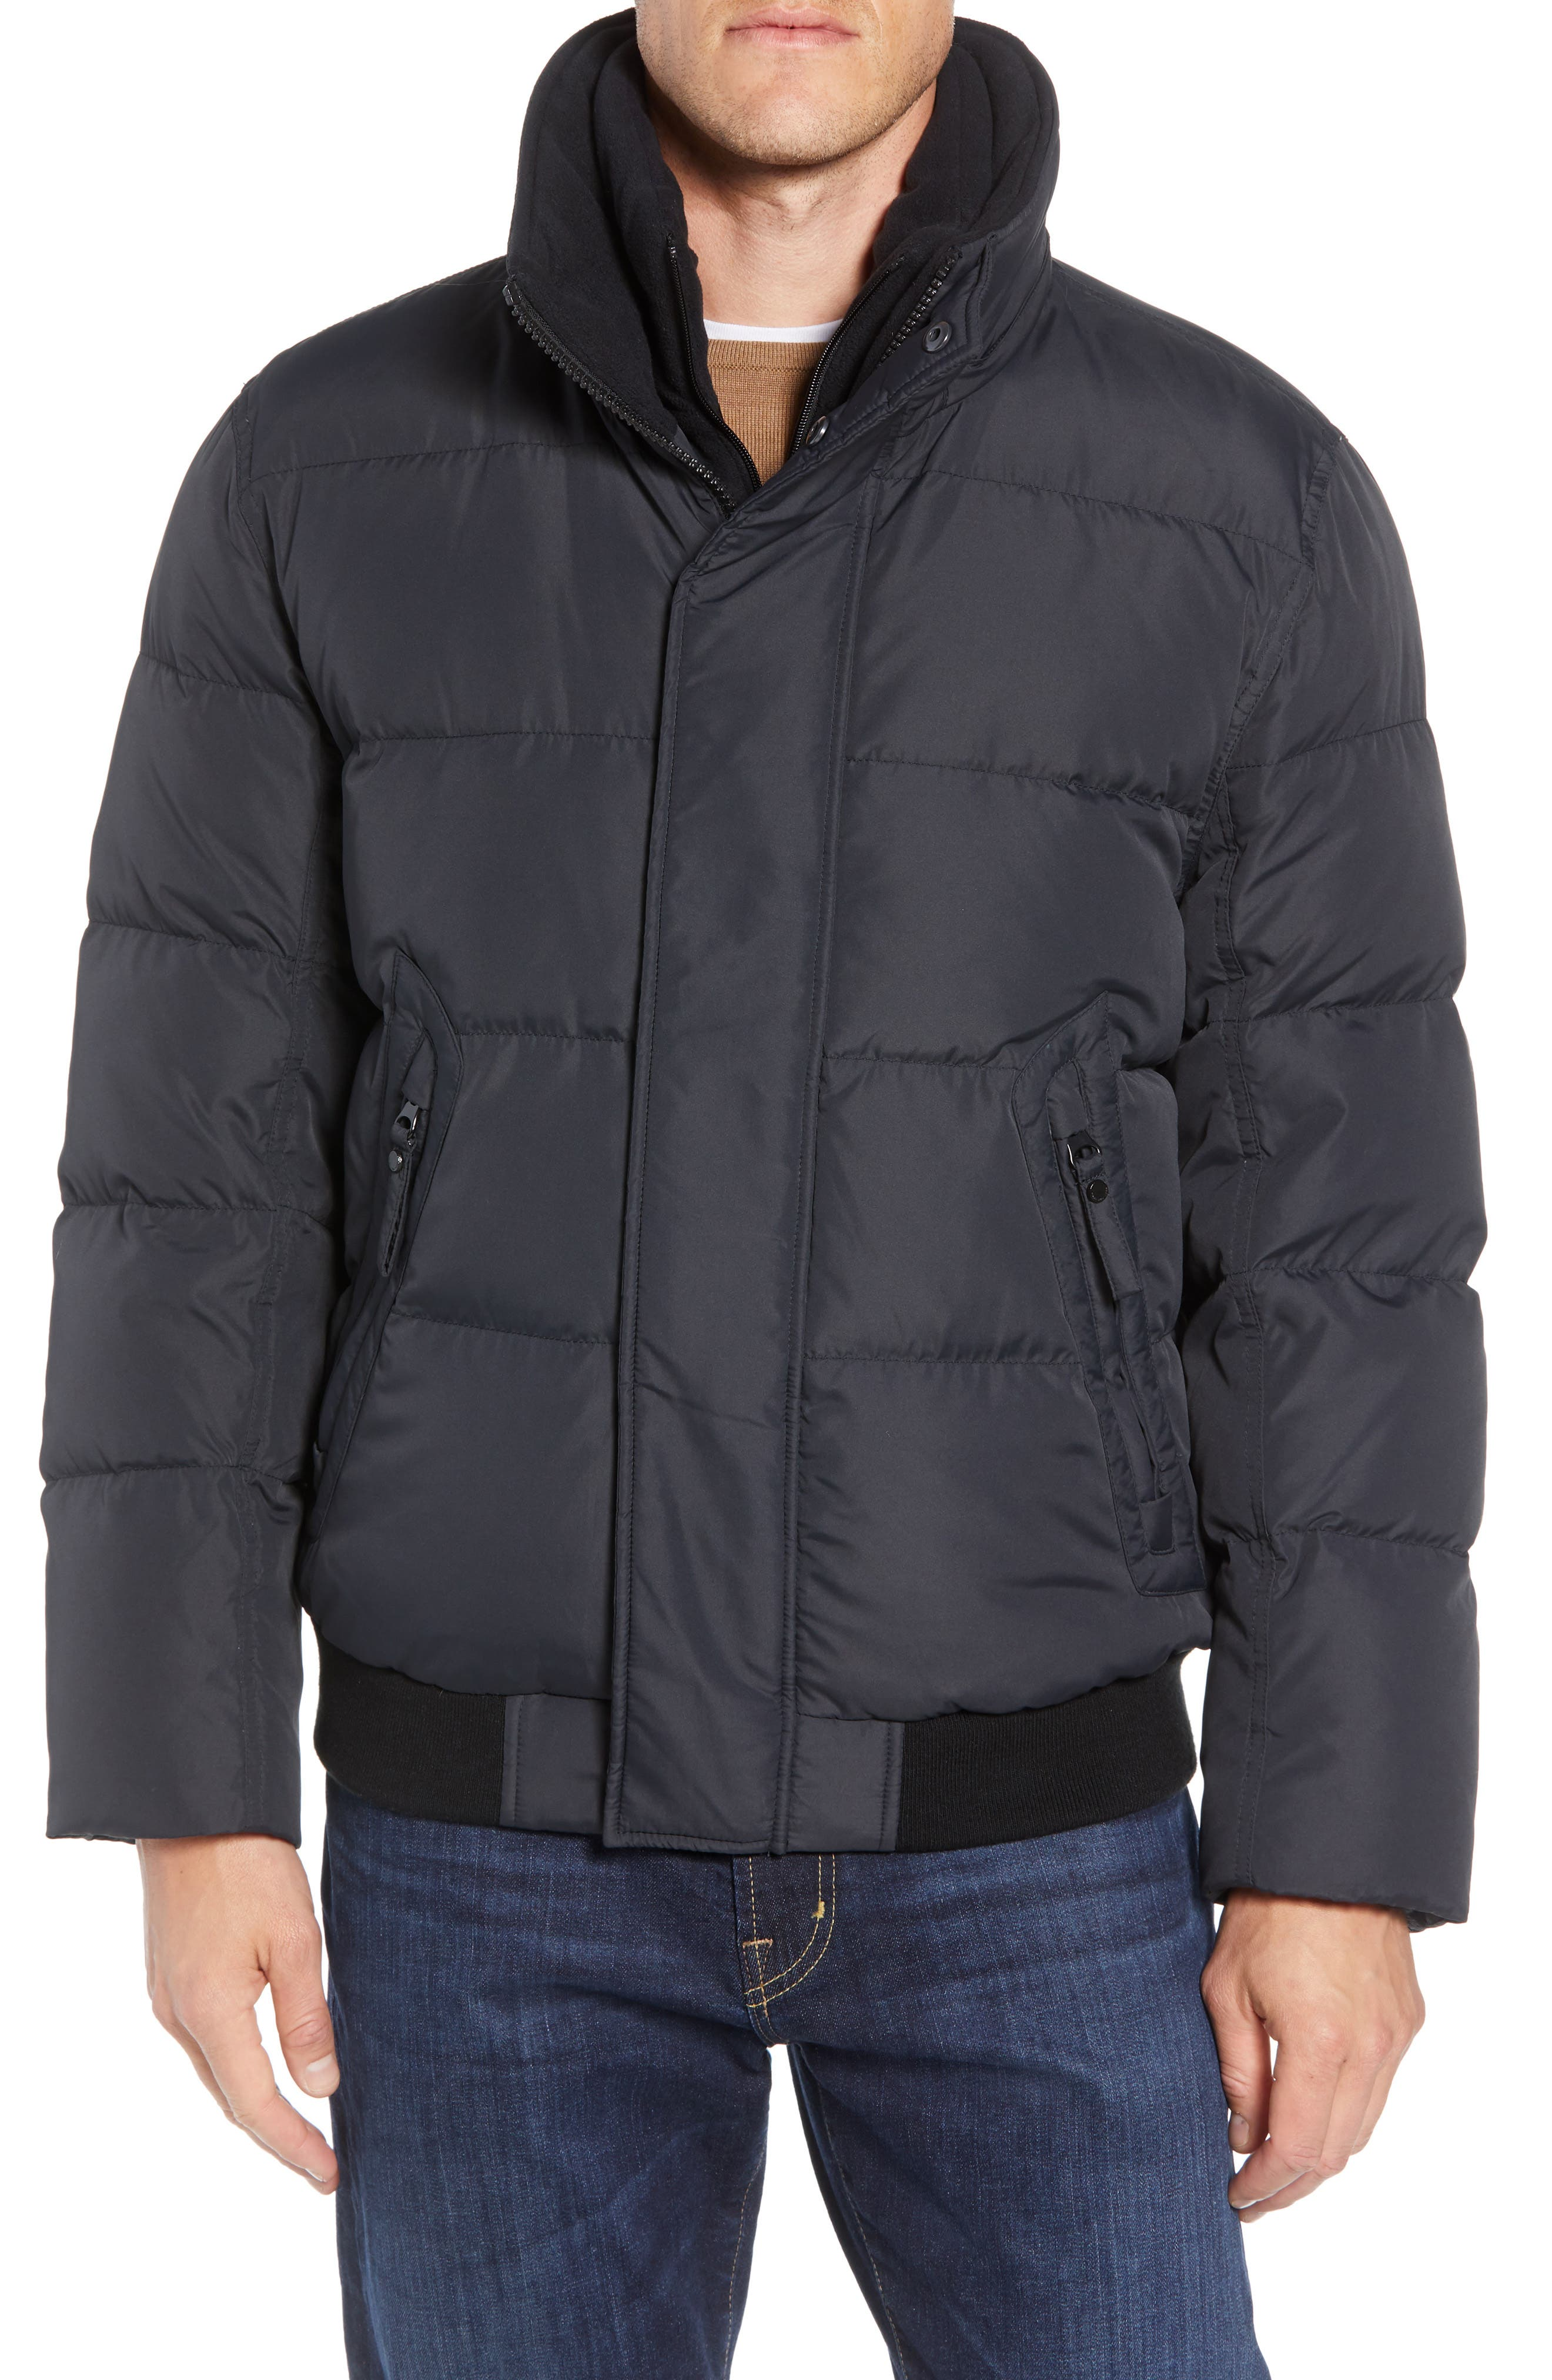 Clermont Insulated Bomber Jacket,                             Alternate thumbnail 2, color,                             BLACK